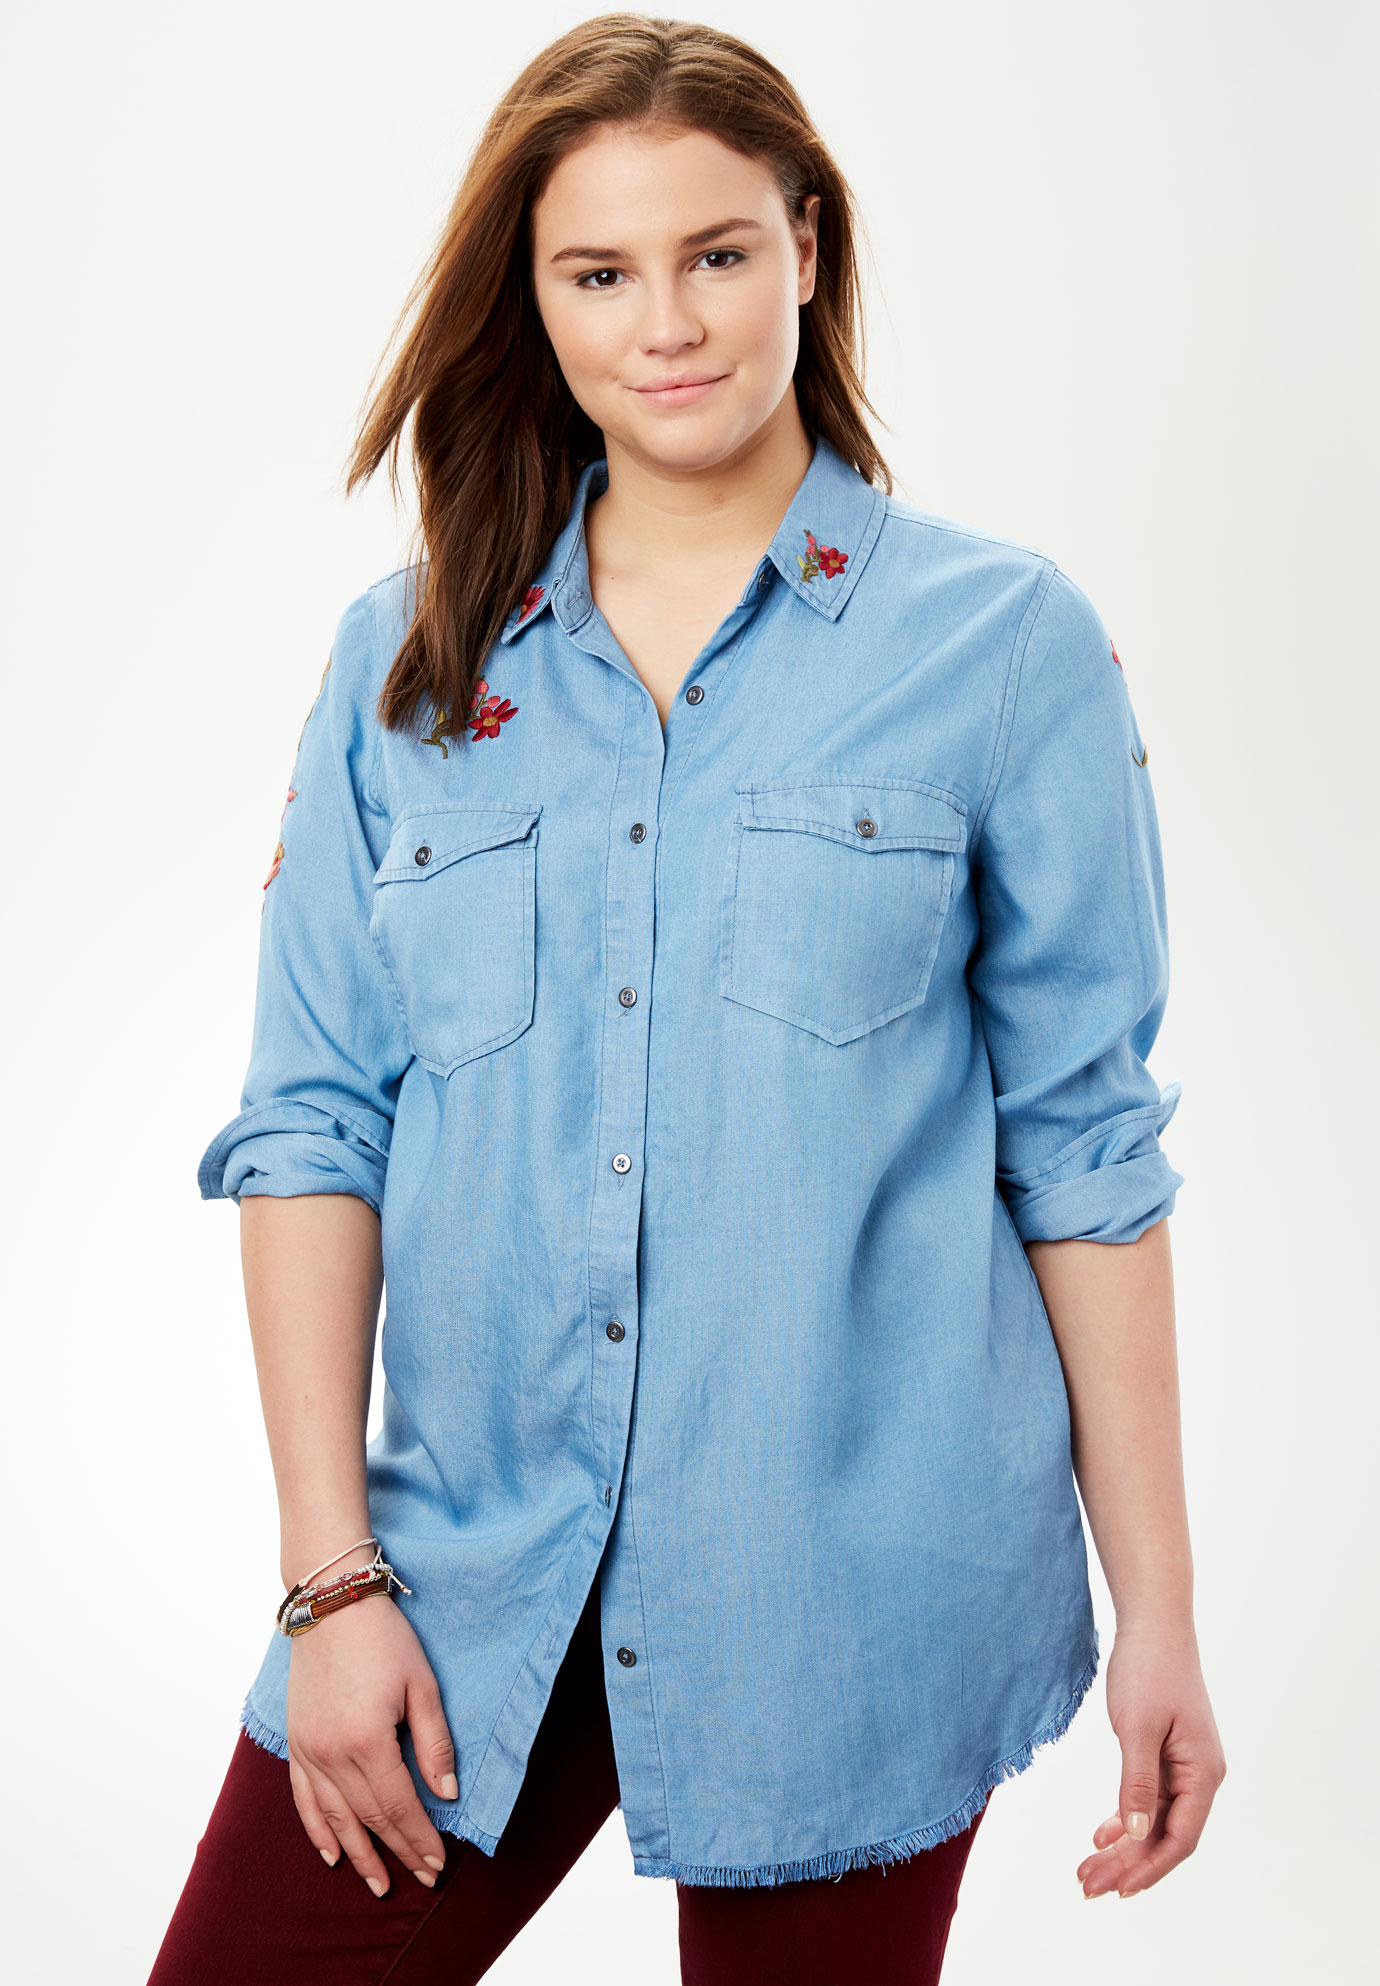 f56bc1beded Embroidered Utility Button-Down Shirt